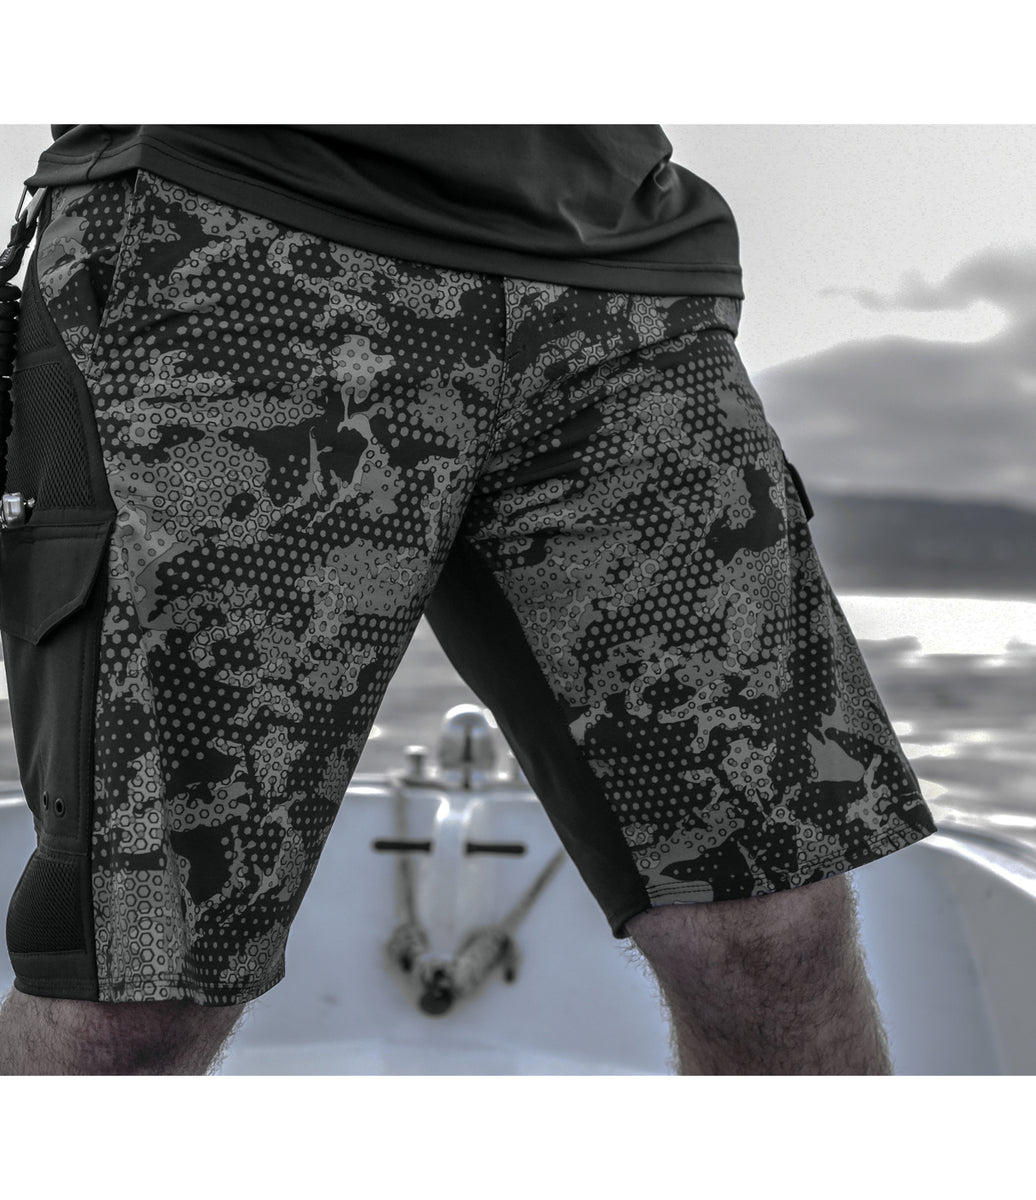 FX-PRO Tactical Fishing Shorts Big Image - 6